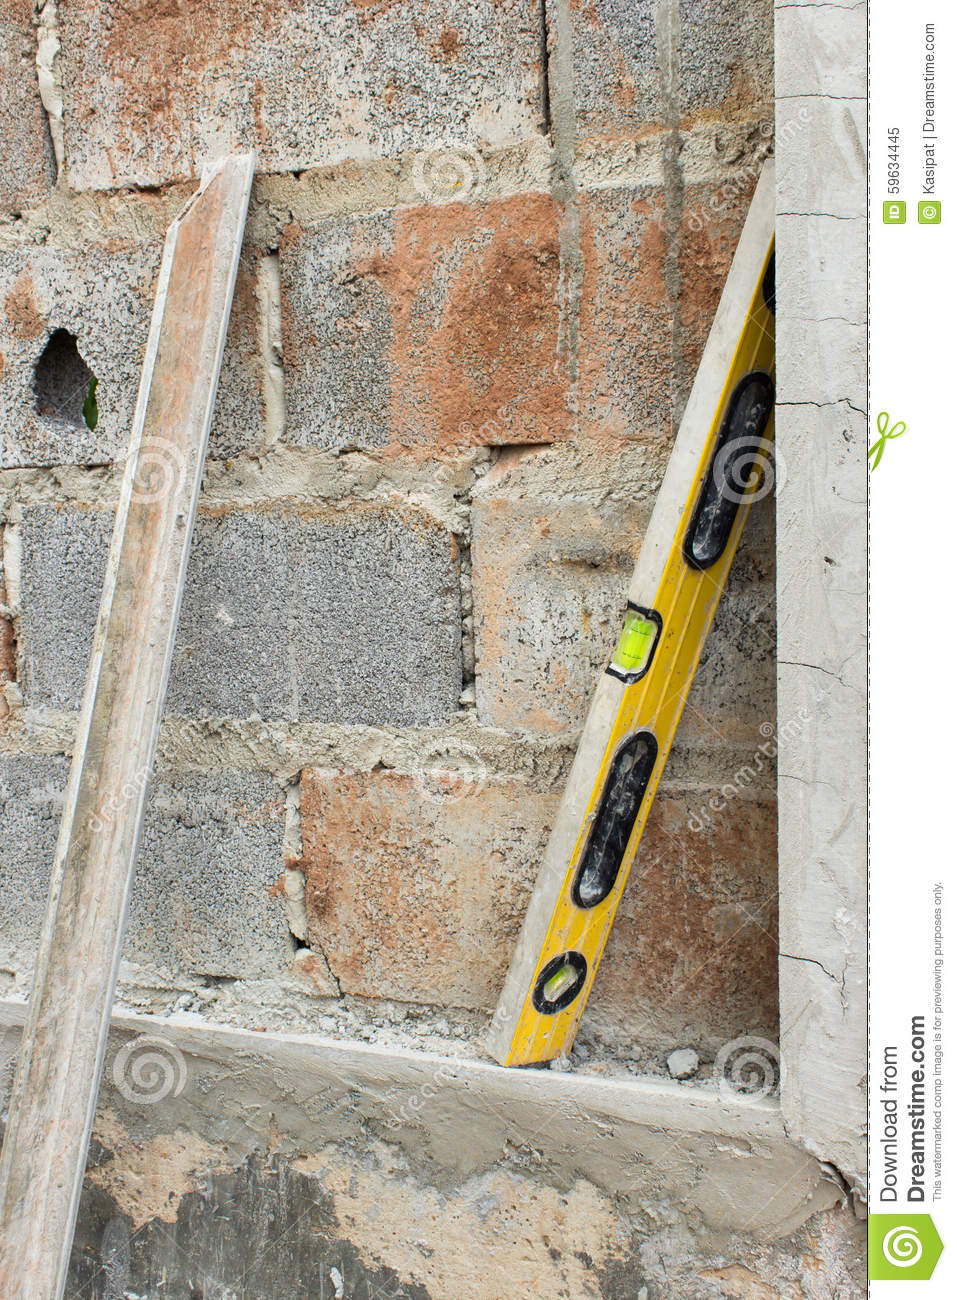 Construction Plaster Tool stock image  Image of background